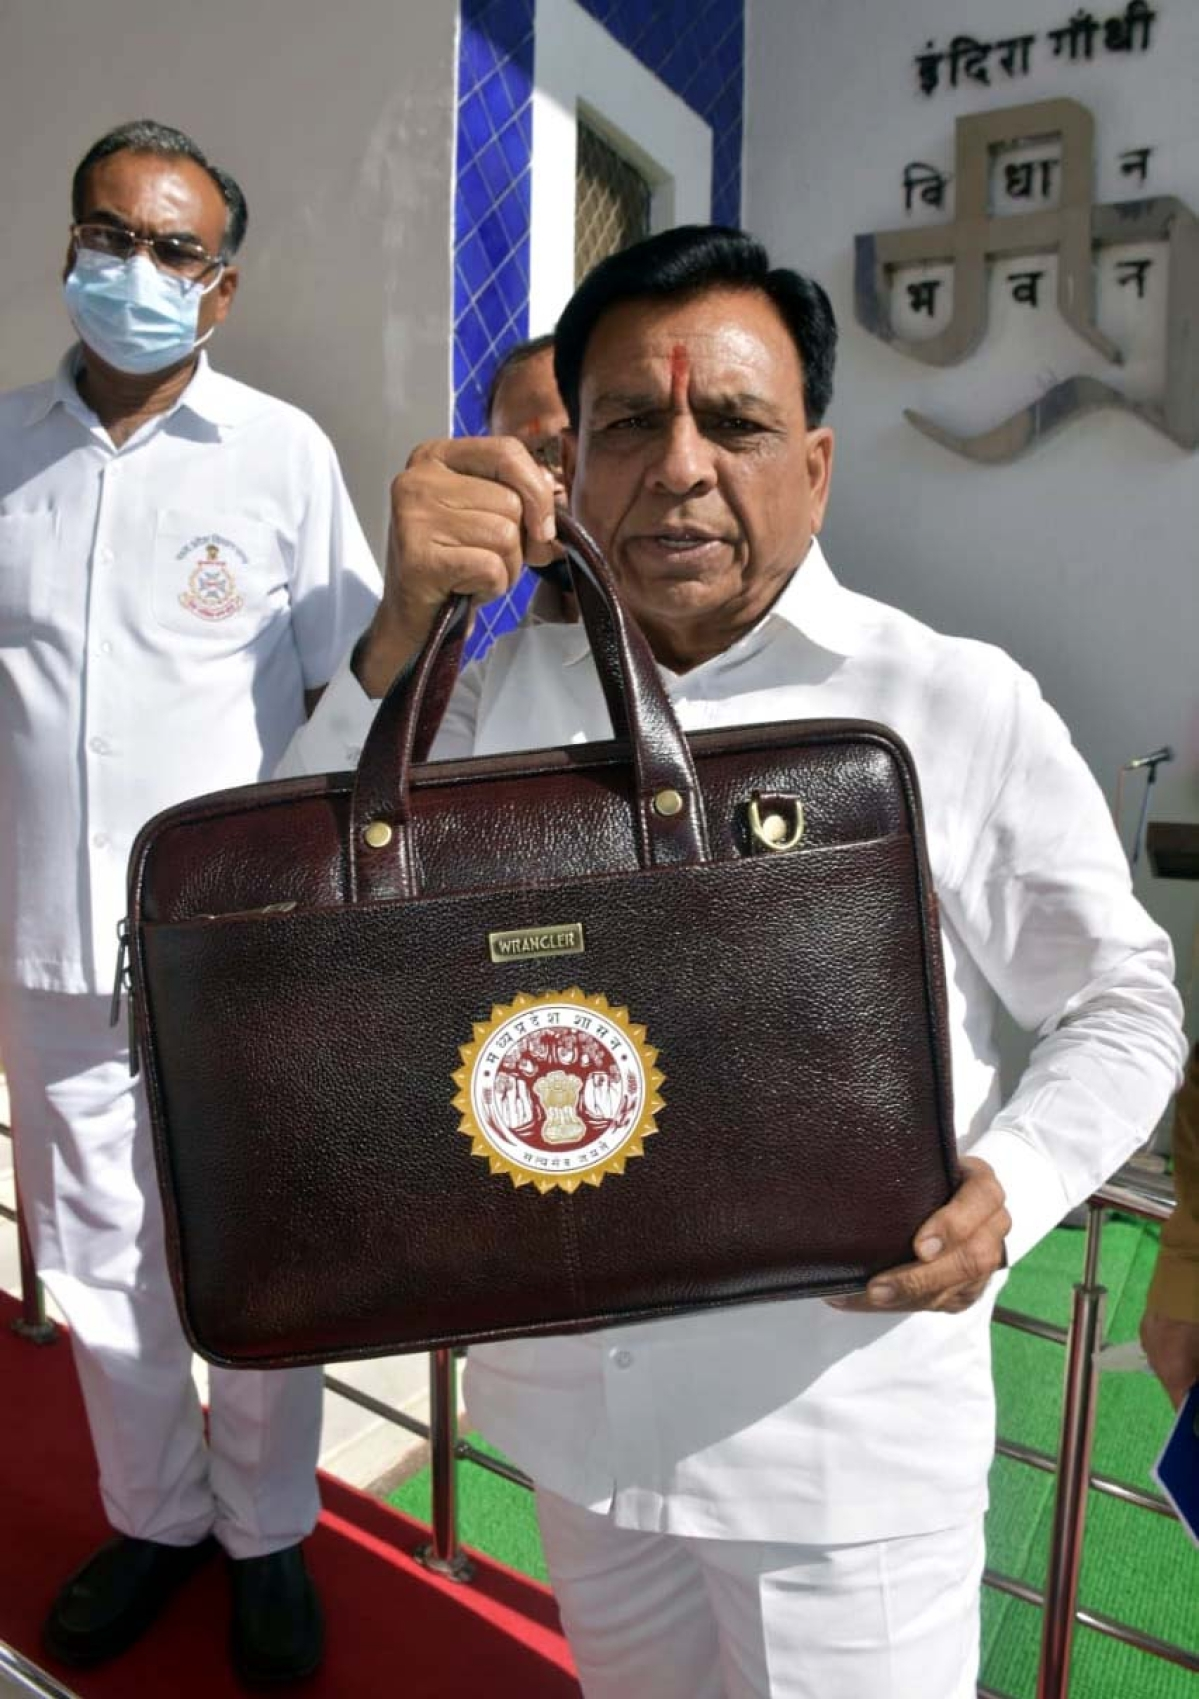 Madhya Pradesh Finance Minister Jagdish Devdas arrives to present the budget of the state for the year 2021-22 in Bhopal on Tuesday.